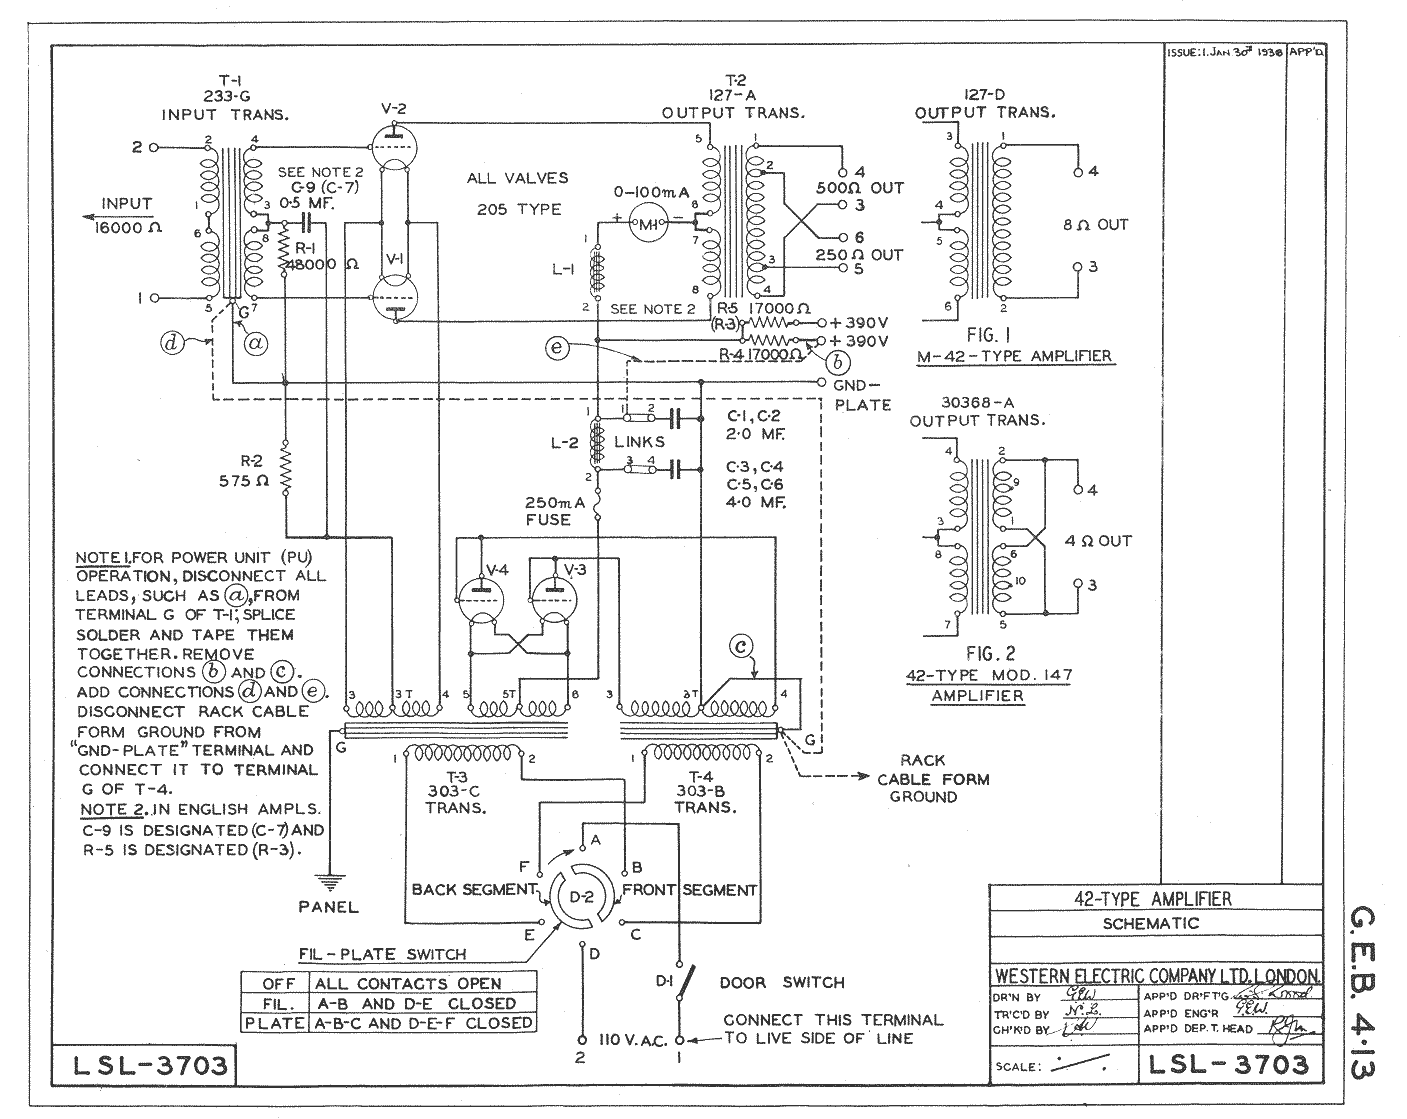 west amplifier schematic